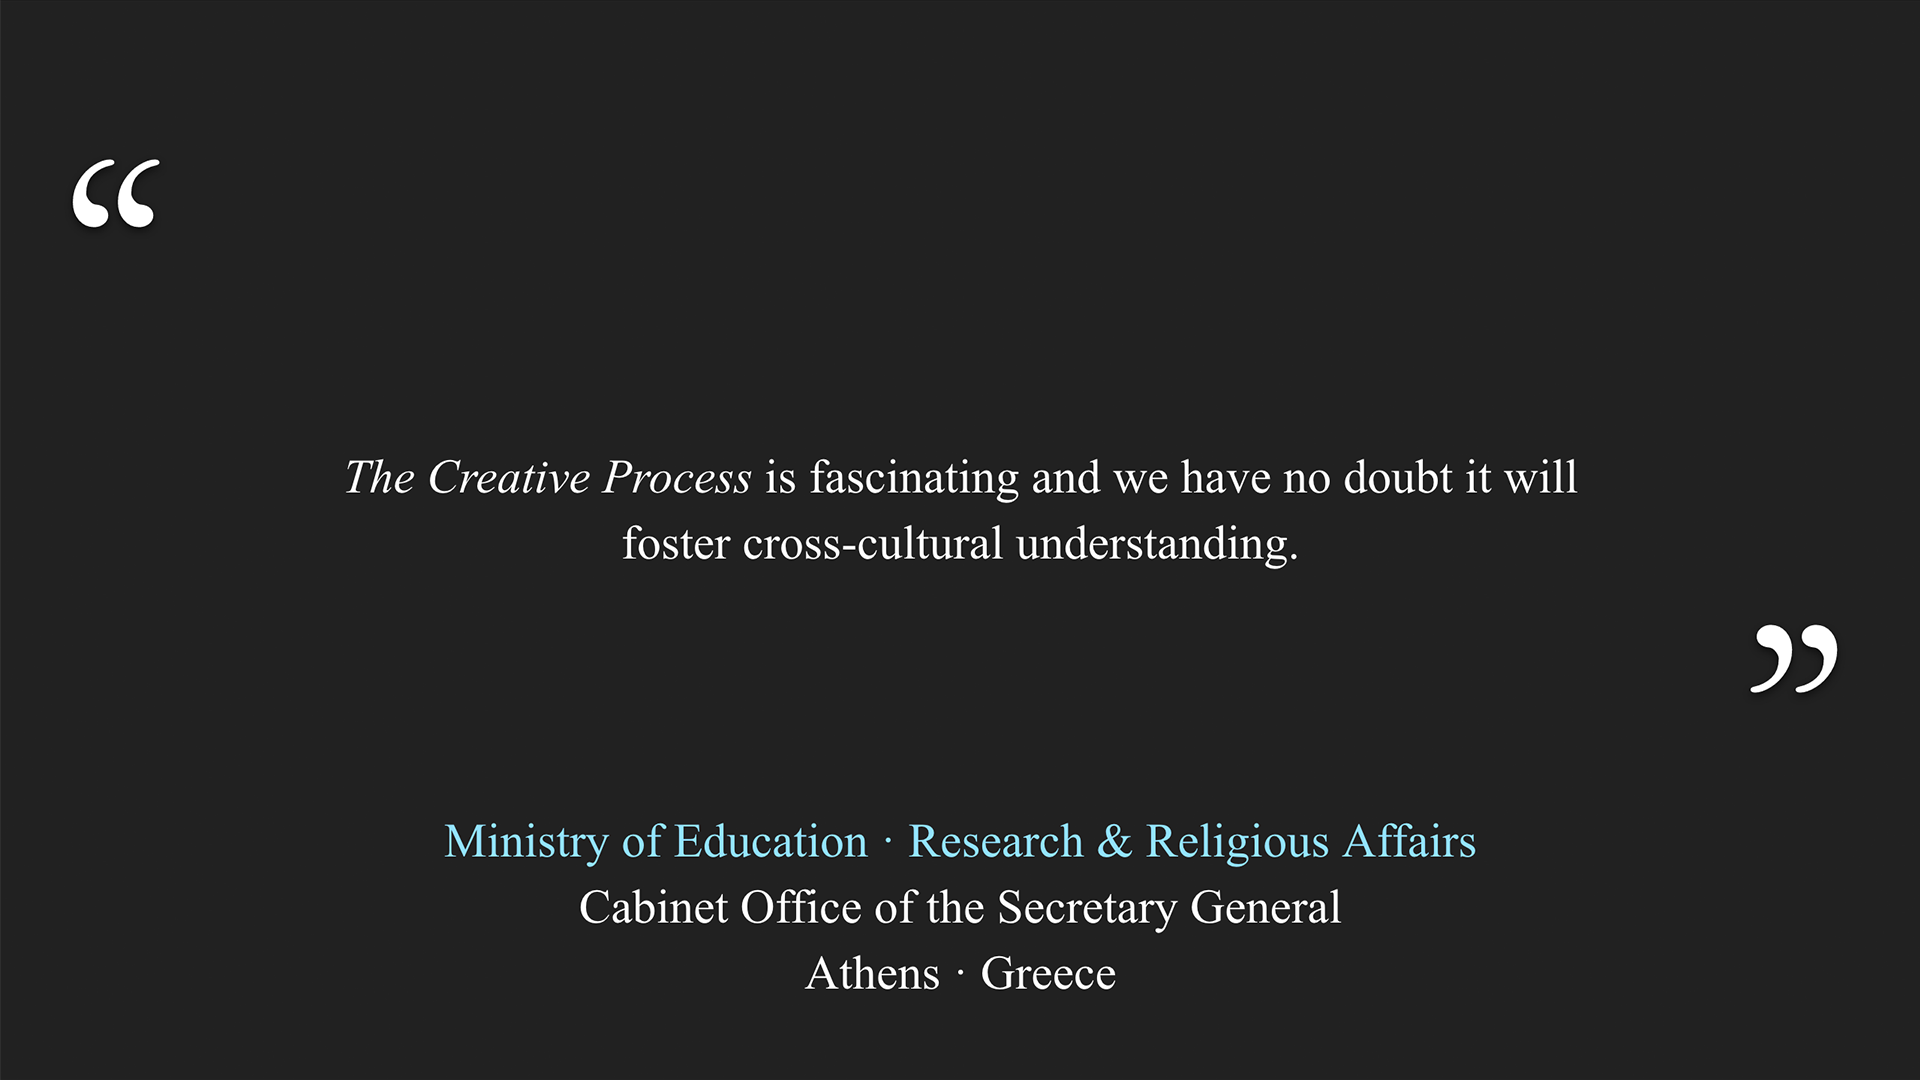 GREEK-MINISTRY-EDUCATION-THE-CREATIVE-PROCESS-MIA-FUNK.png